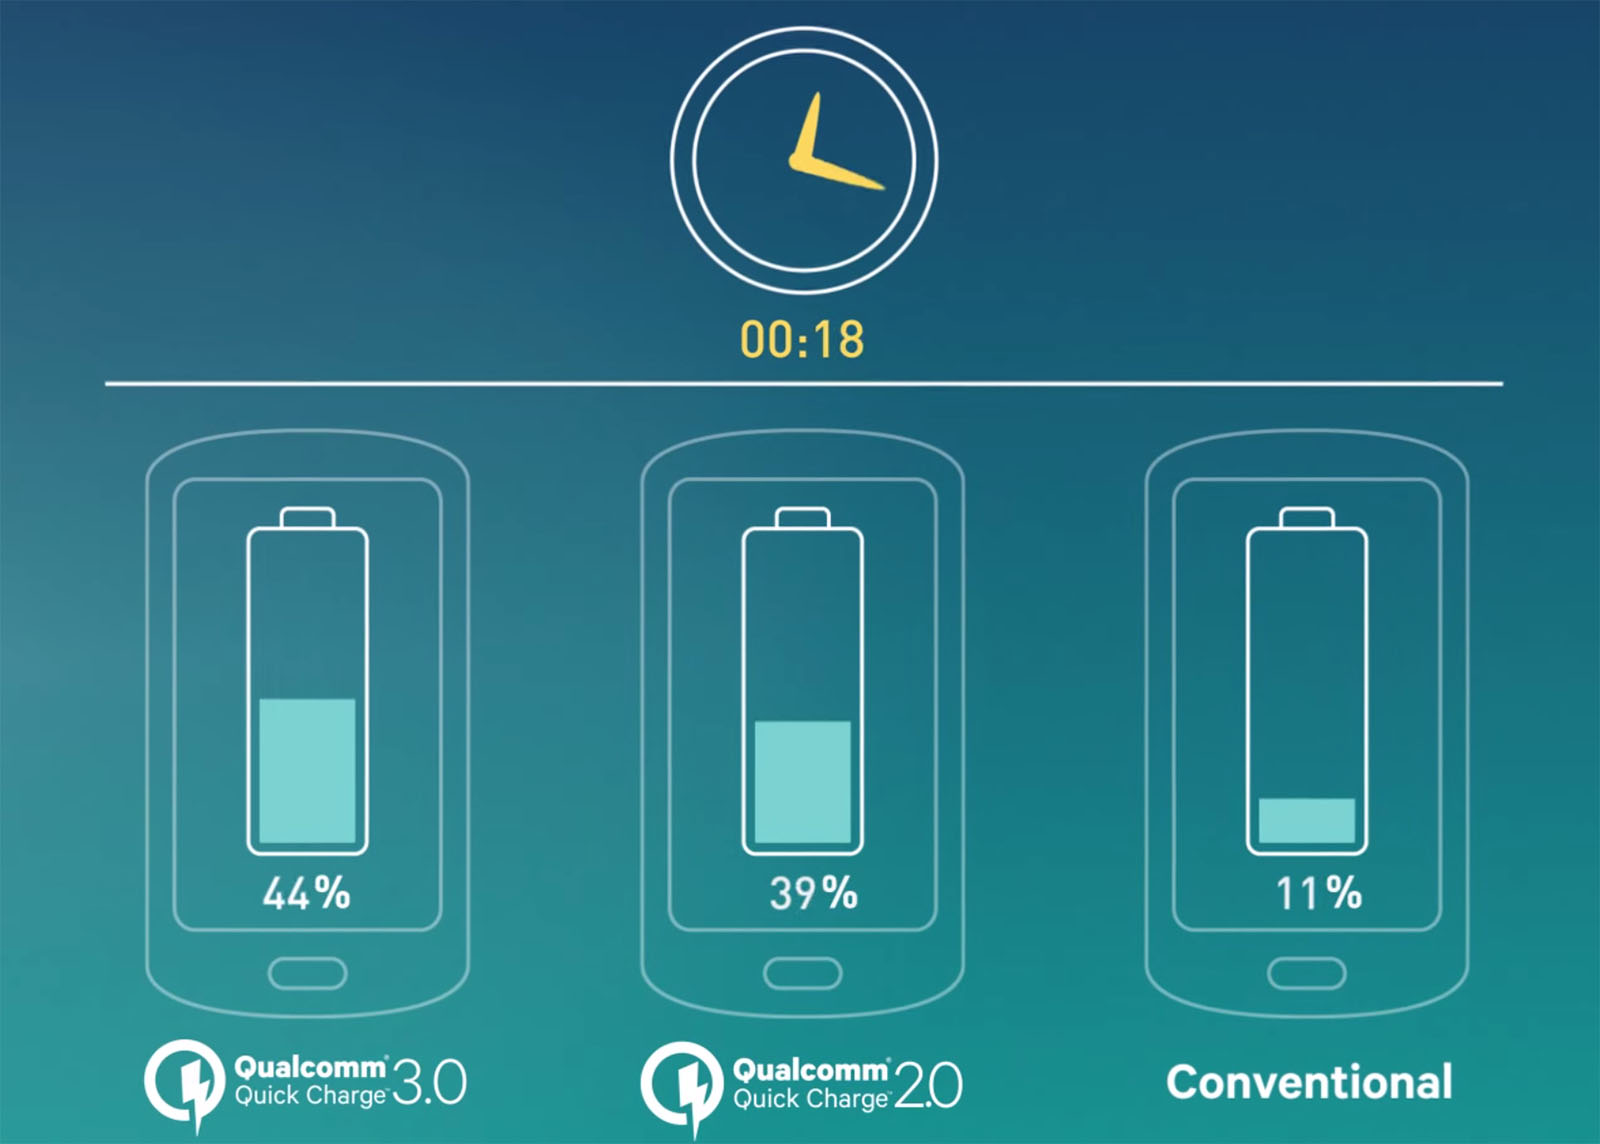 Qualcomm S Quick Charge 3 0 Technology Promises To Charge